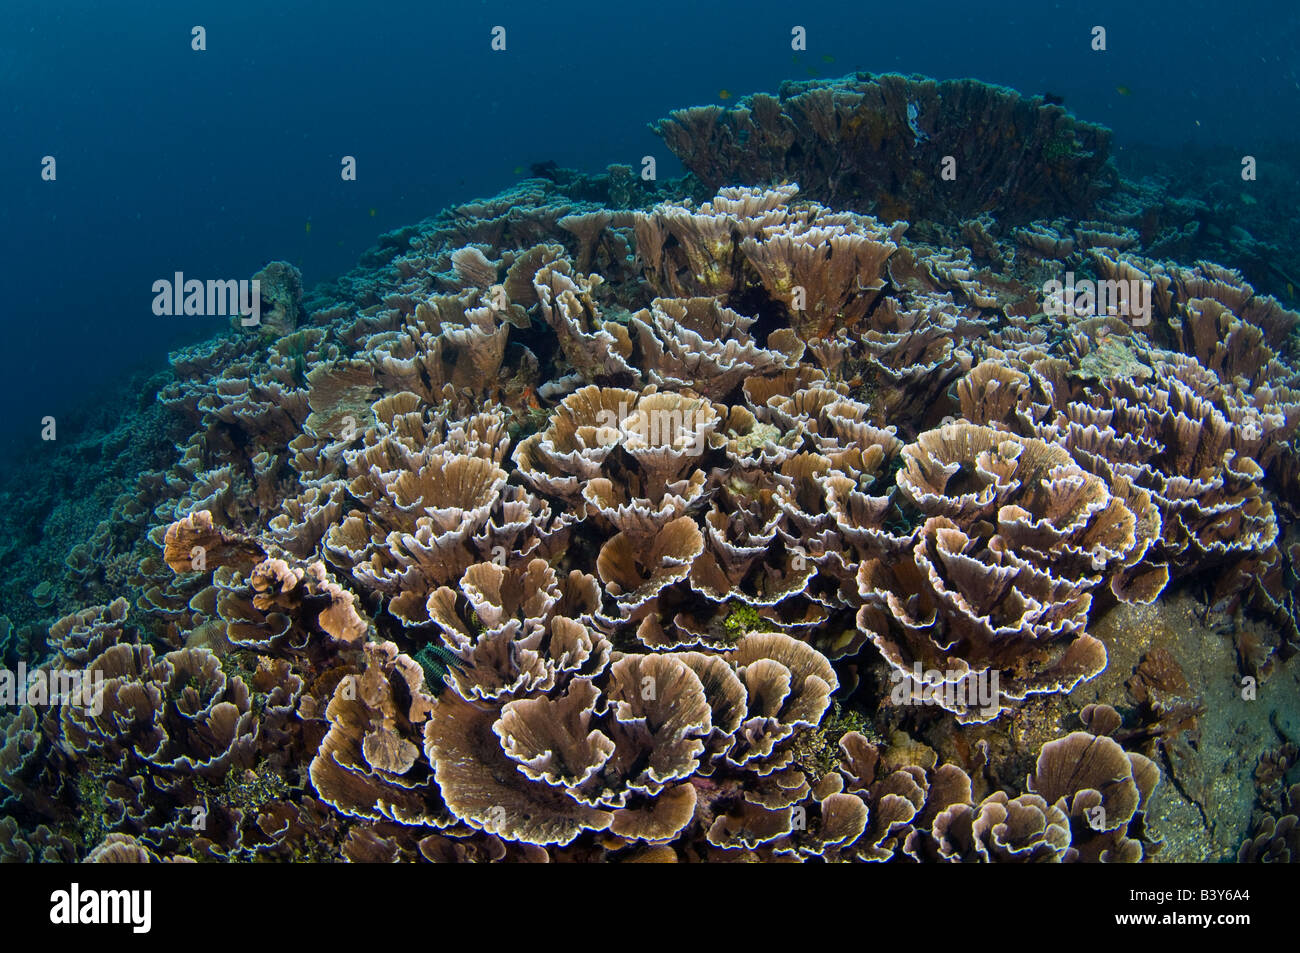 Coral Reef in Lembeh Strait Indonesia - Stock Image